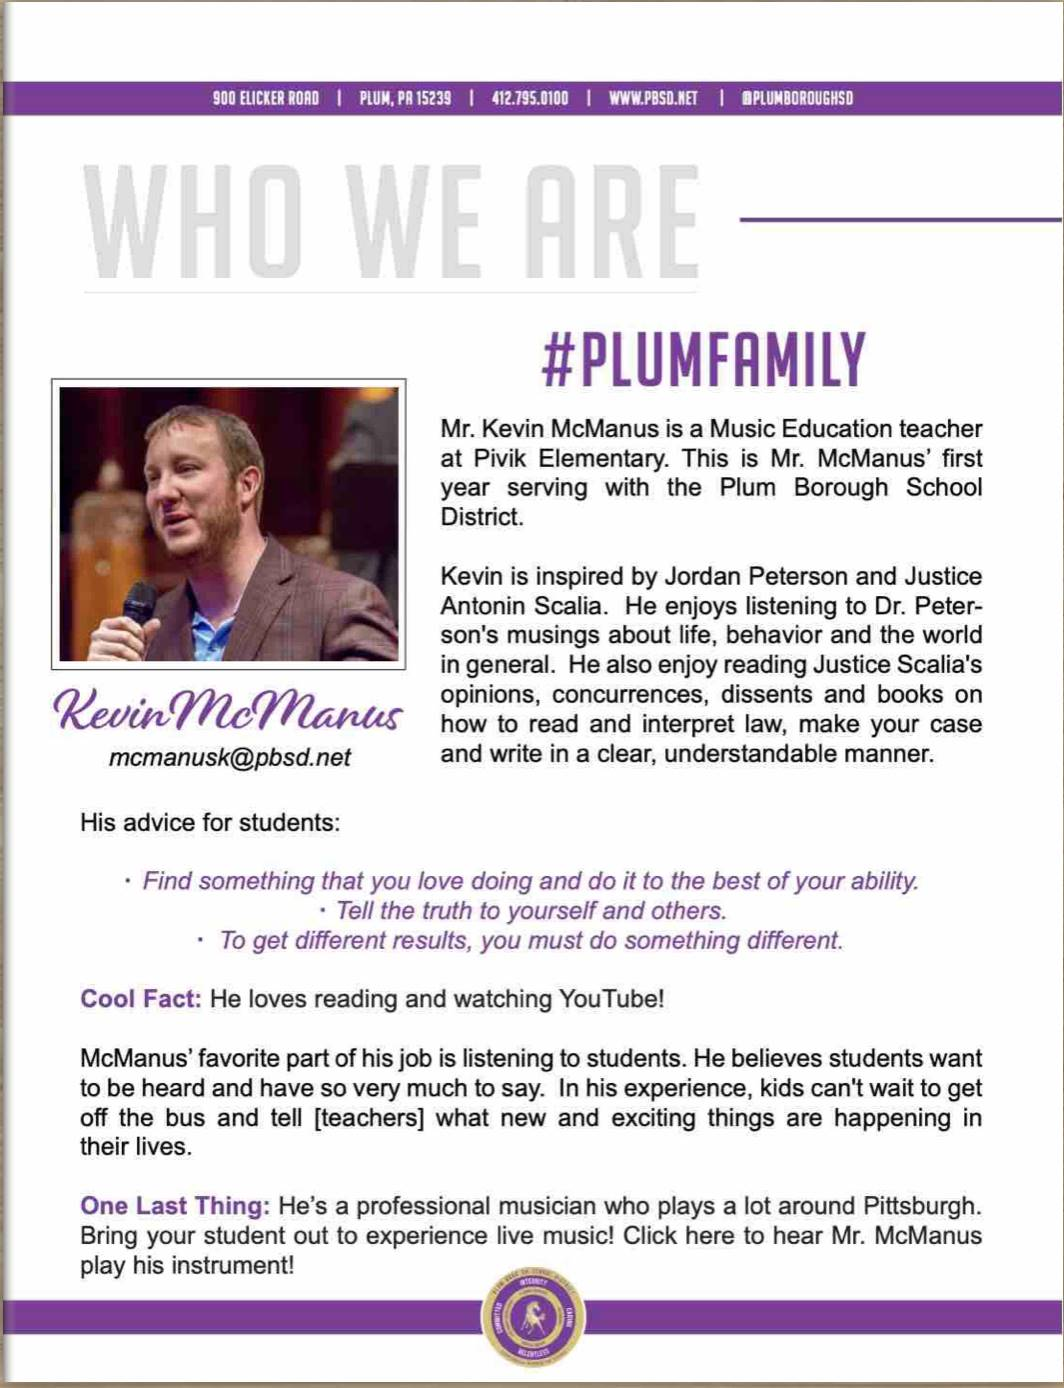 Who We Are Wednesday features Kevin McManus.